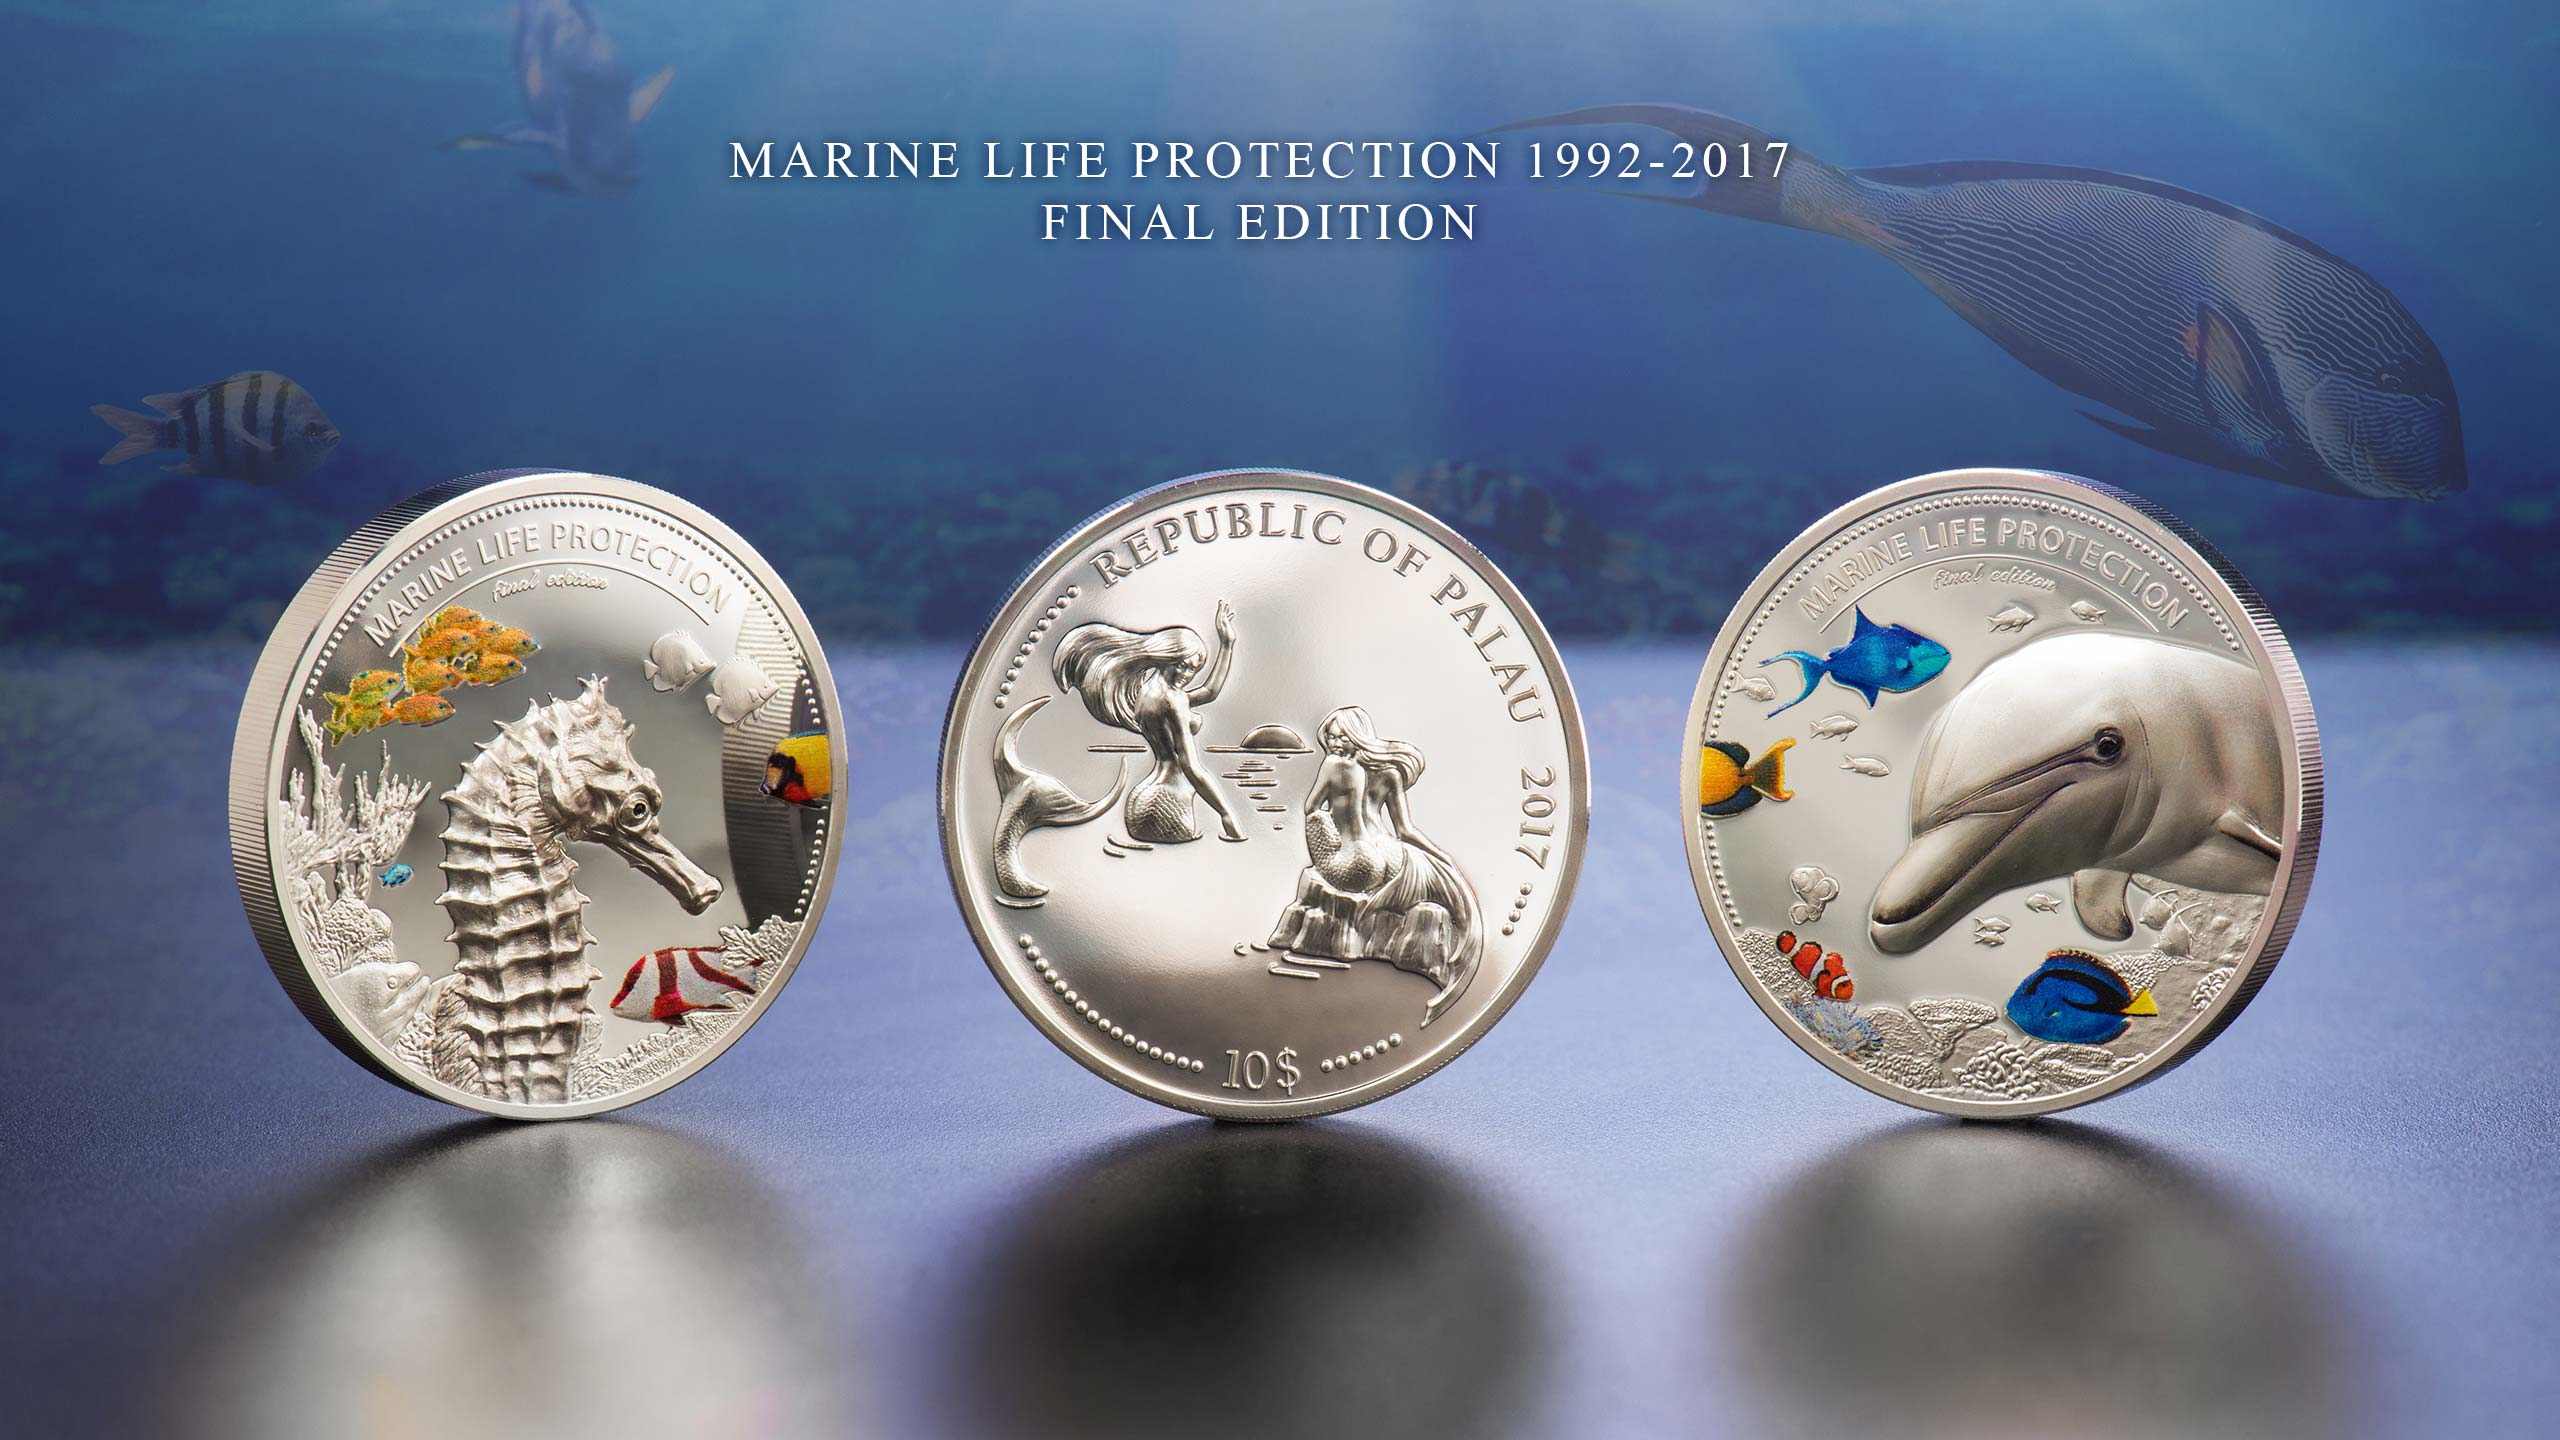 Dolphin and Sea Horse silver coins Marine Life Protection